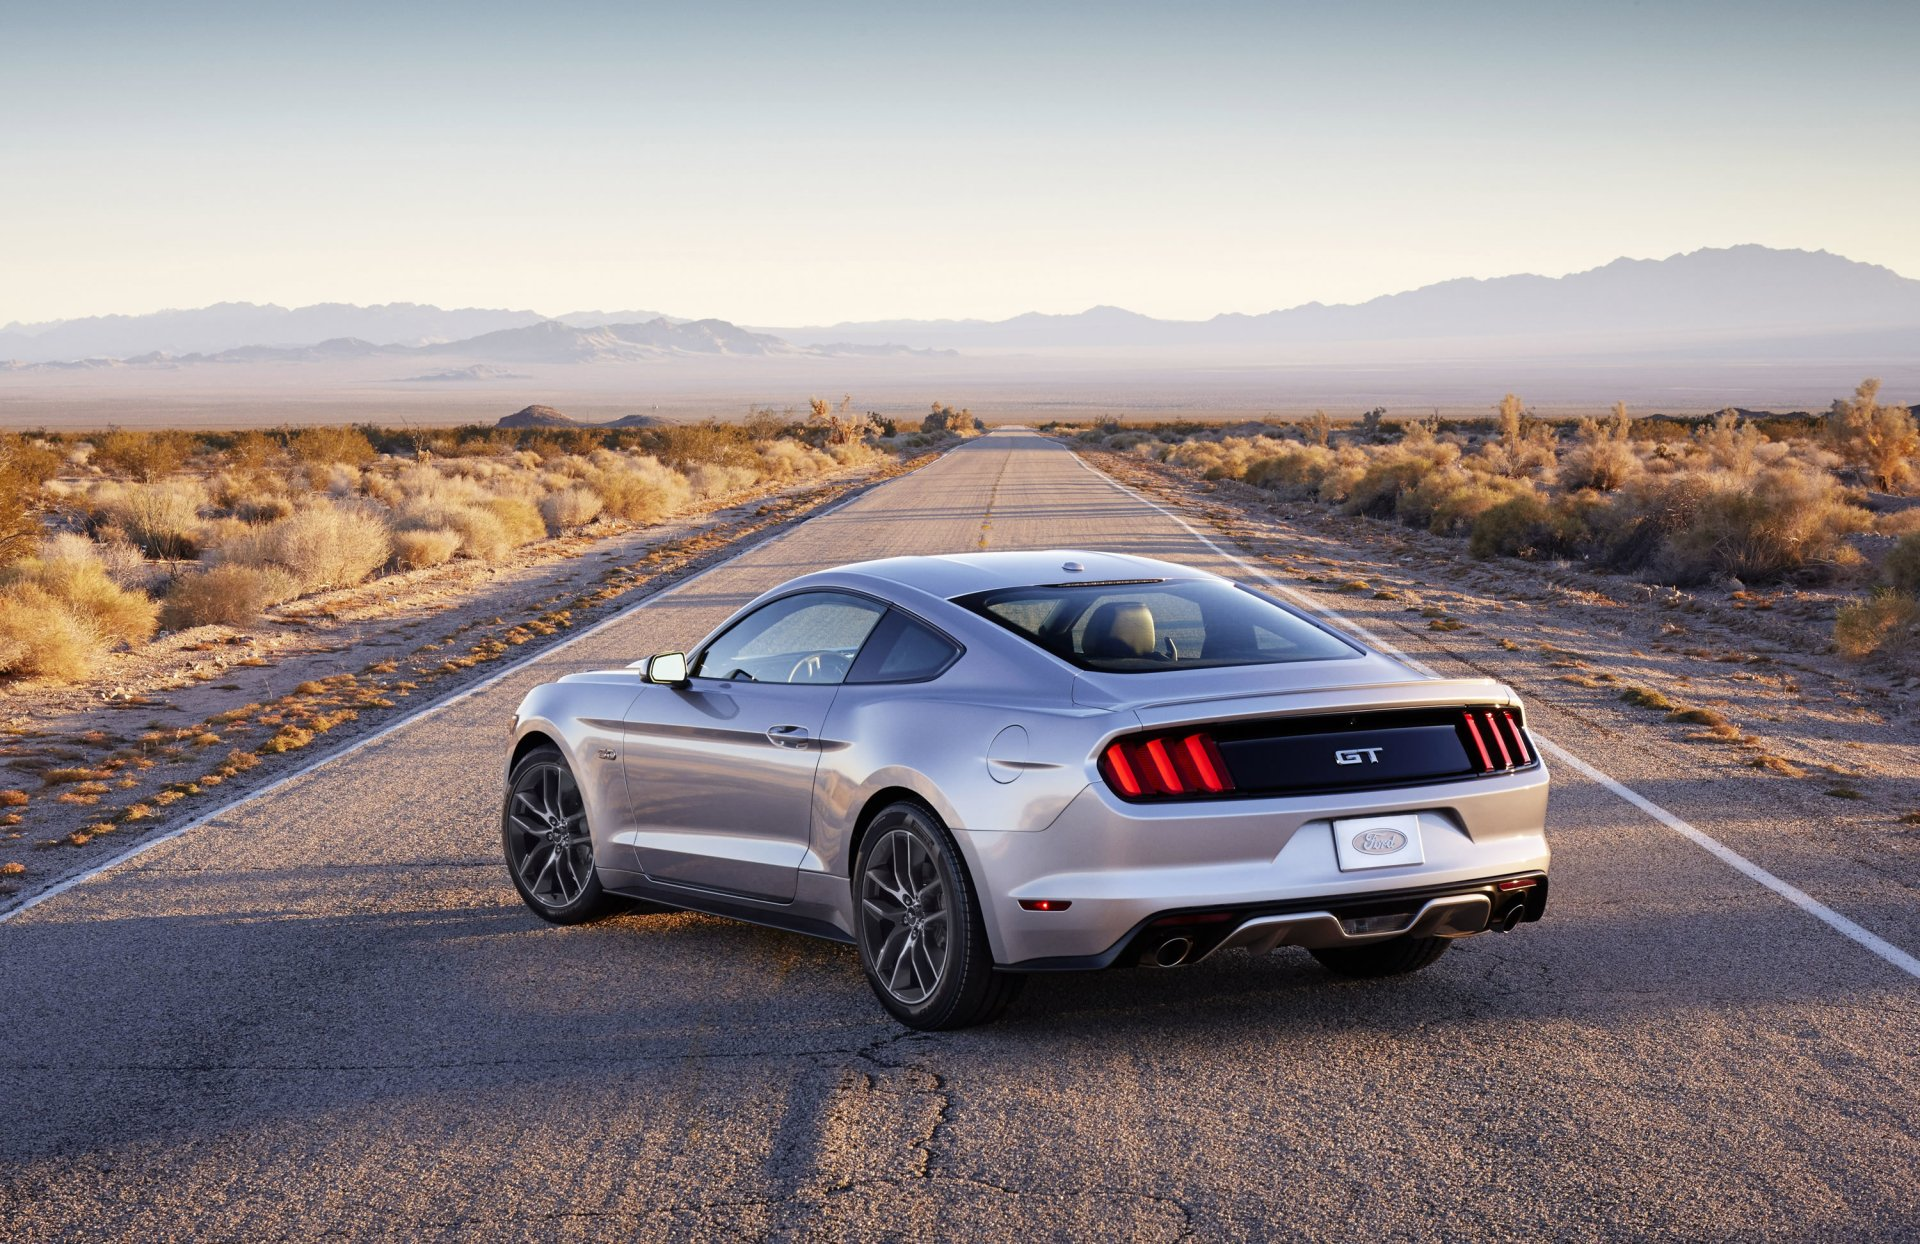 Vehicles - 2015 Ford Mustang GT  Desert Road Ford Mustang Silver Car Car Ford Wallpaper